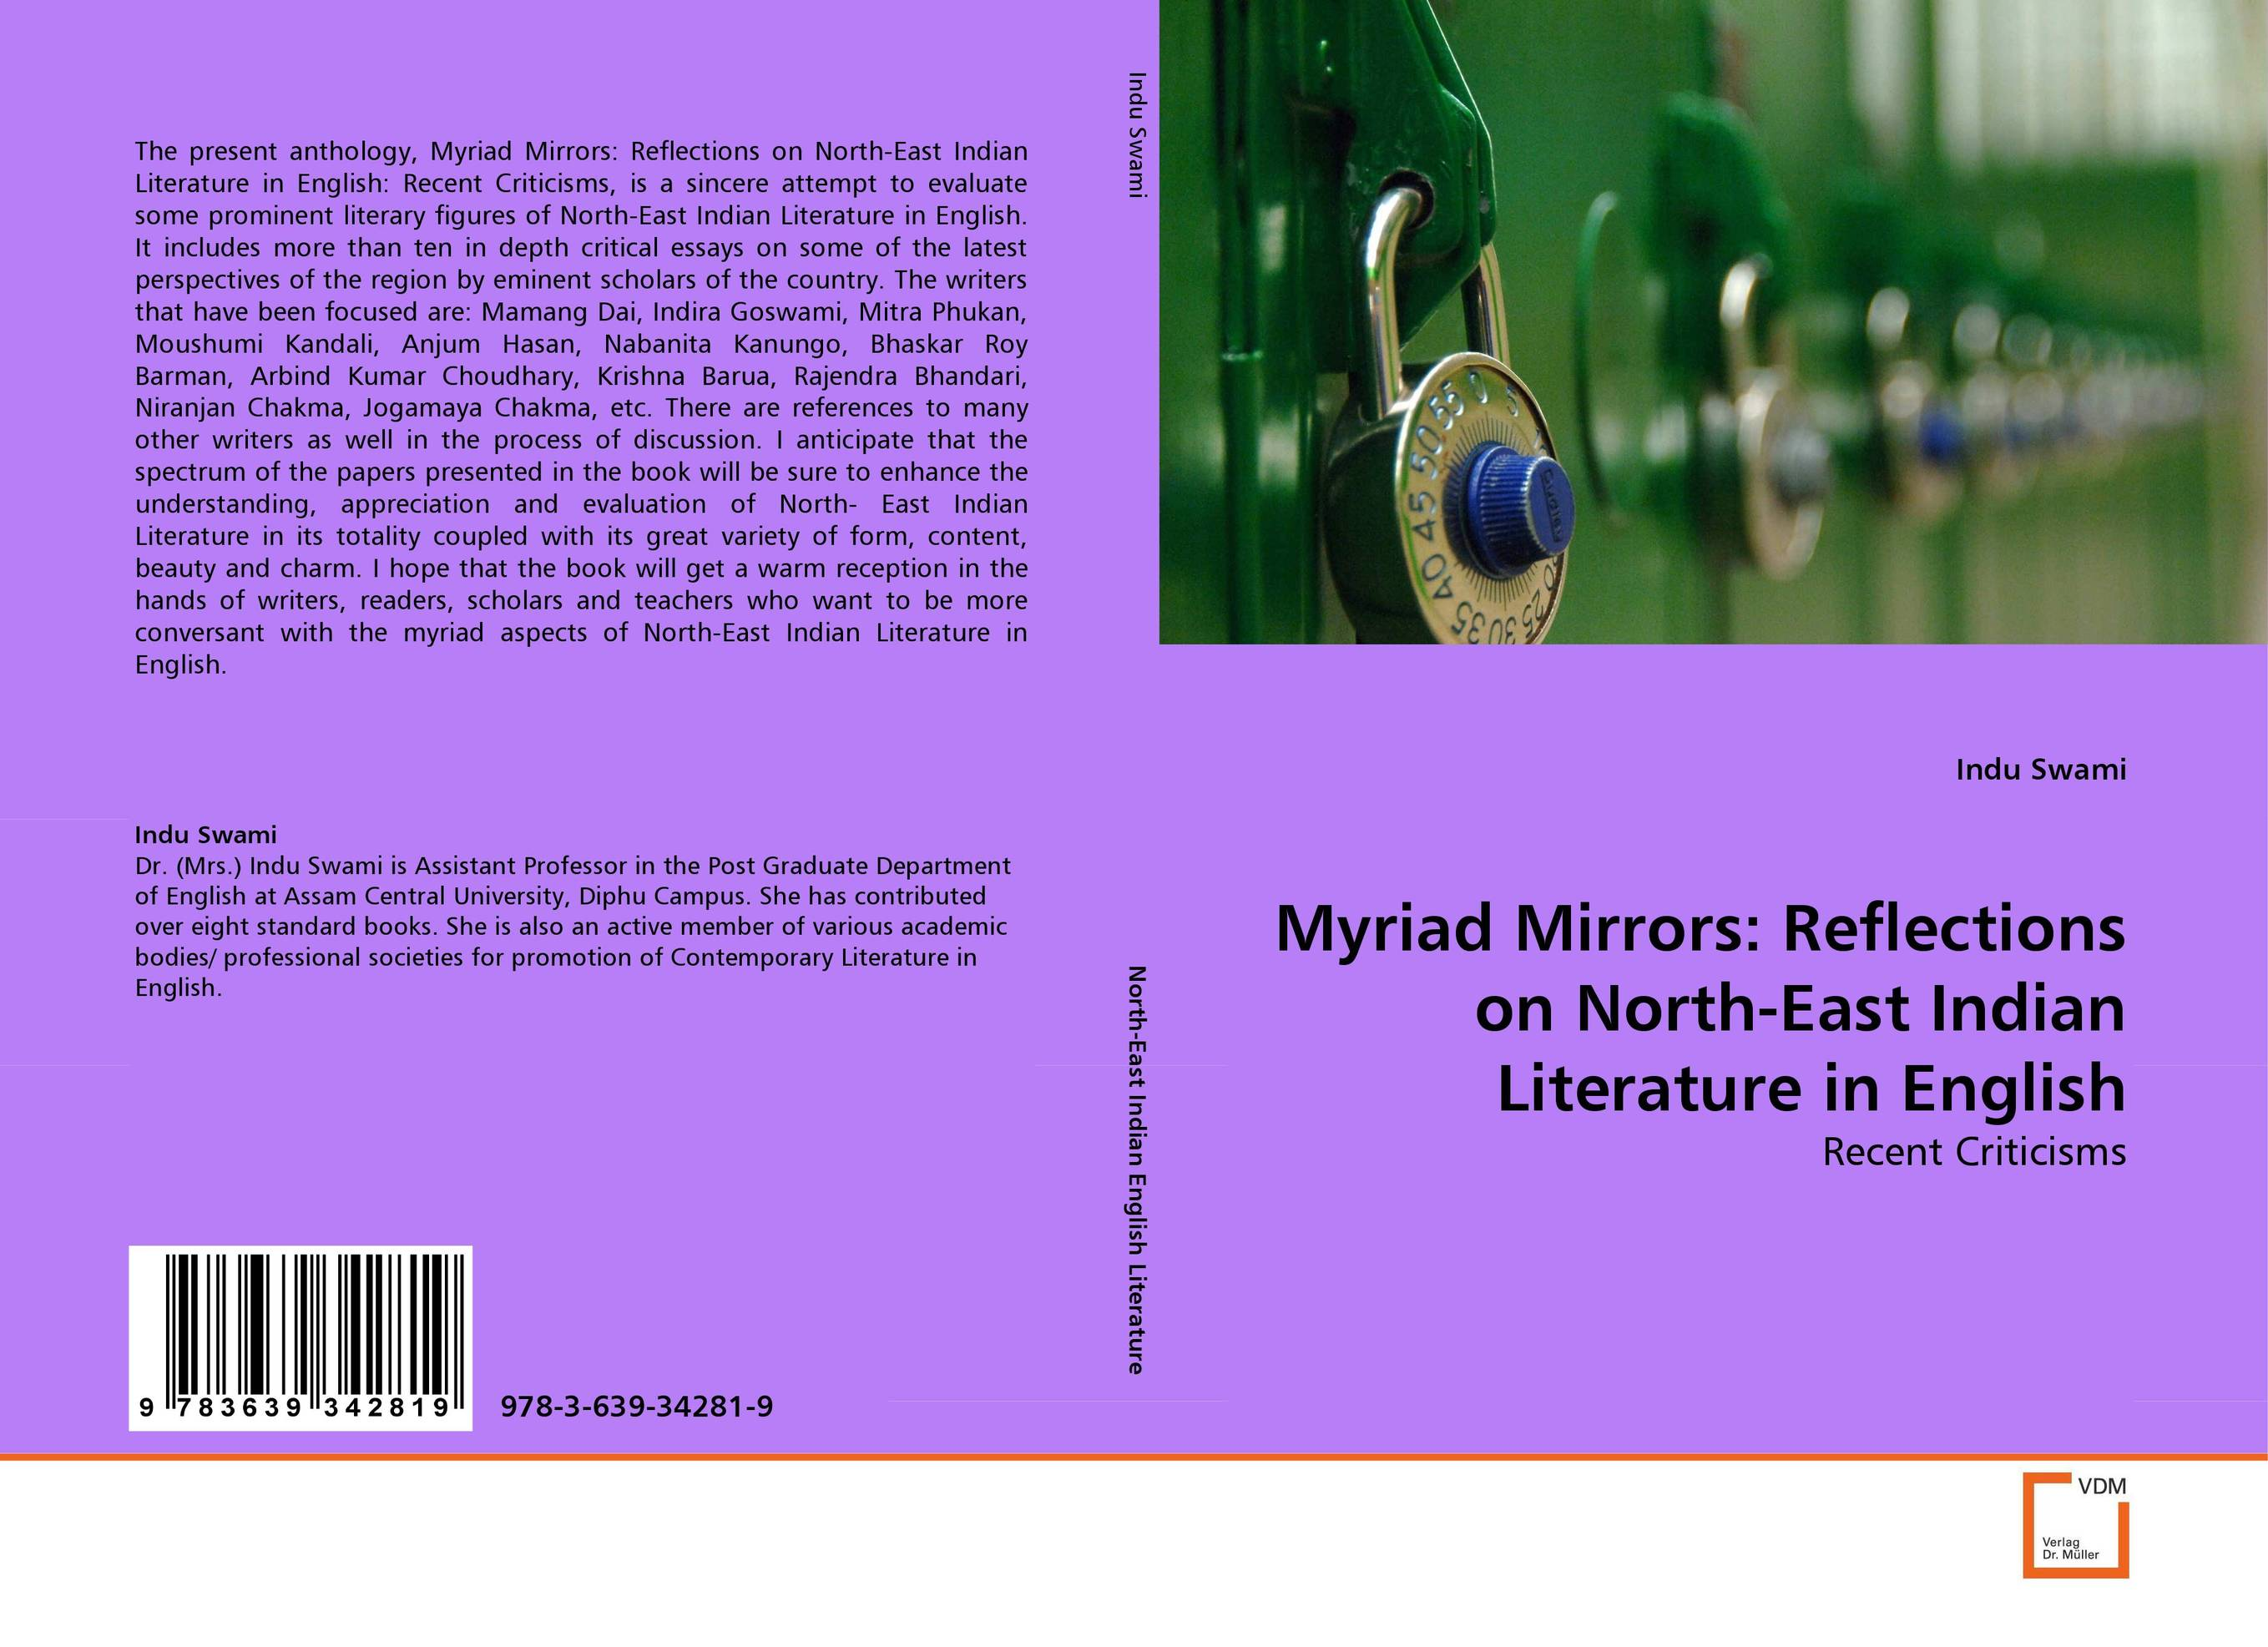 Myriad Mirrors: Reflections on North-East Indian Literature in English sivalingam jayakumar avtar singh and dinesh kumar molecular characterization of sry gene in murrah buffaloes